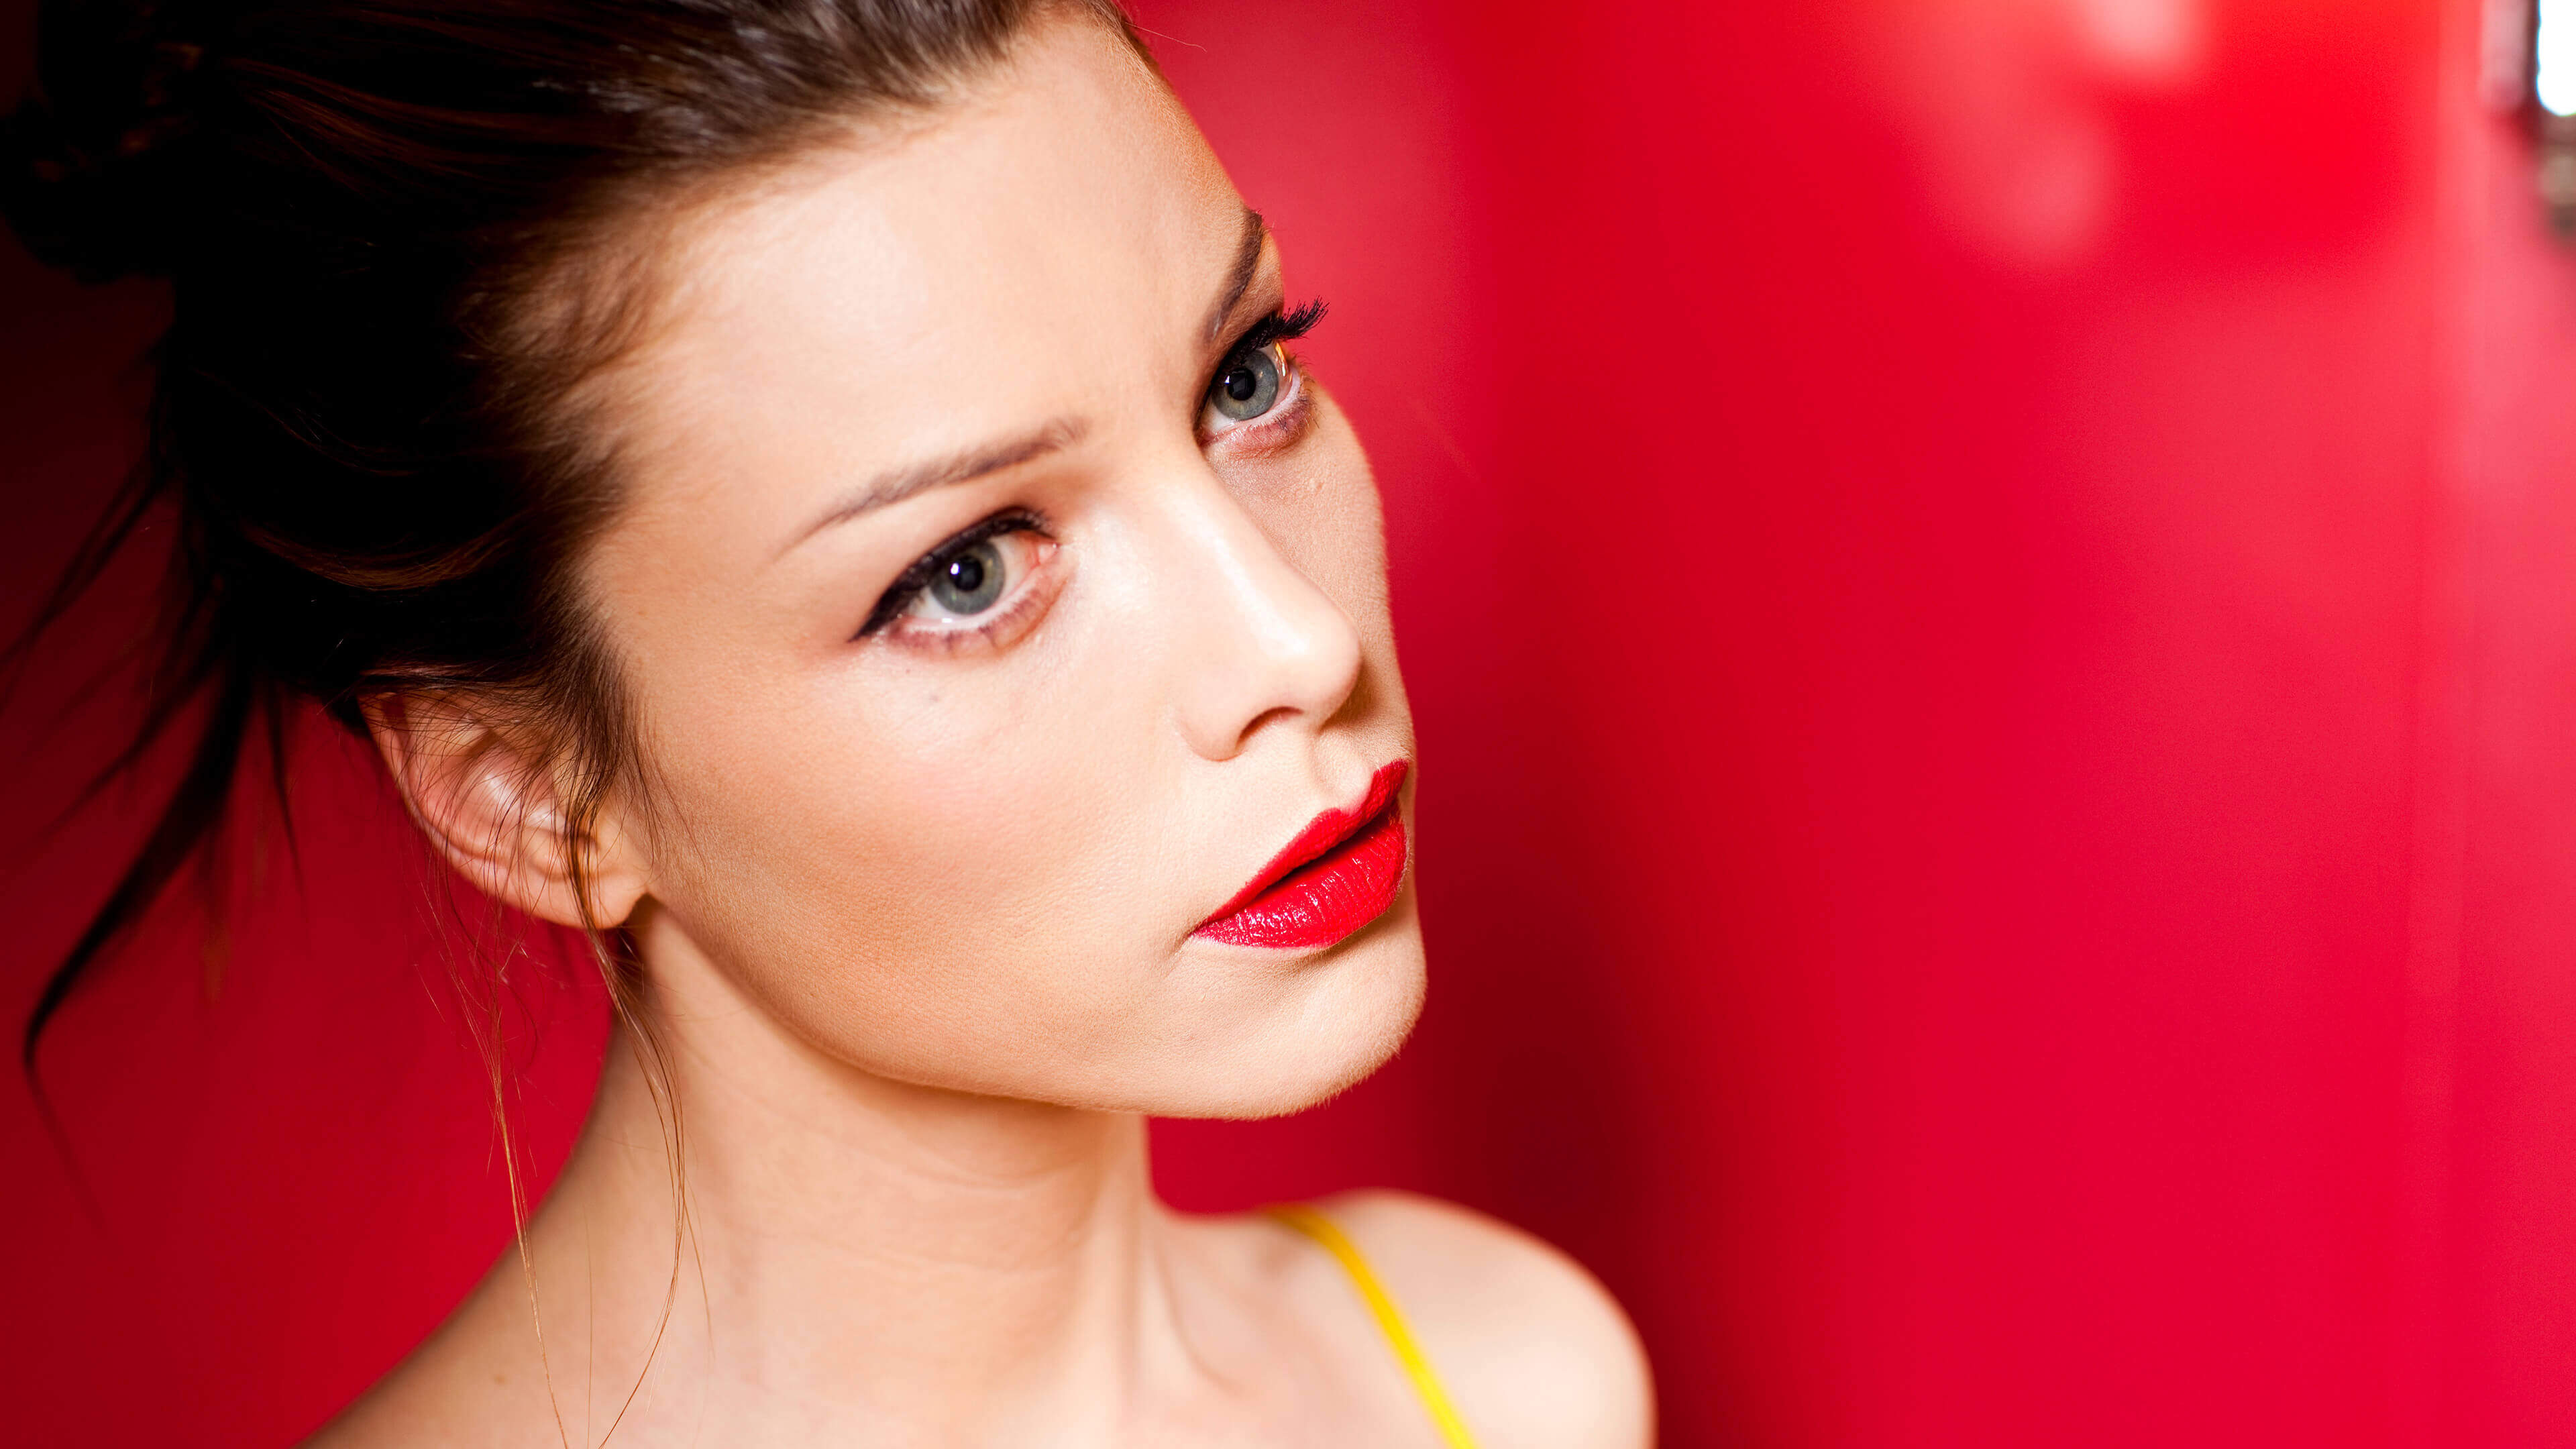 Lauren German Wallpapers High Resolution and Quality Download 3840x2160